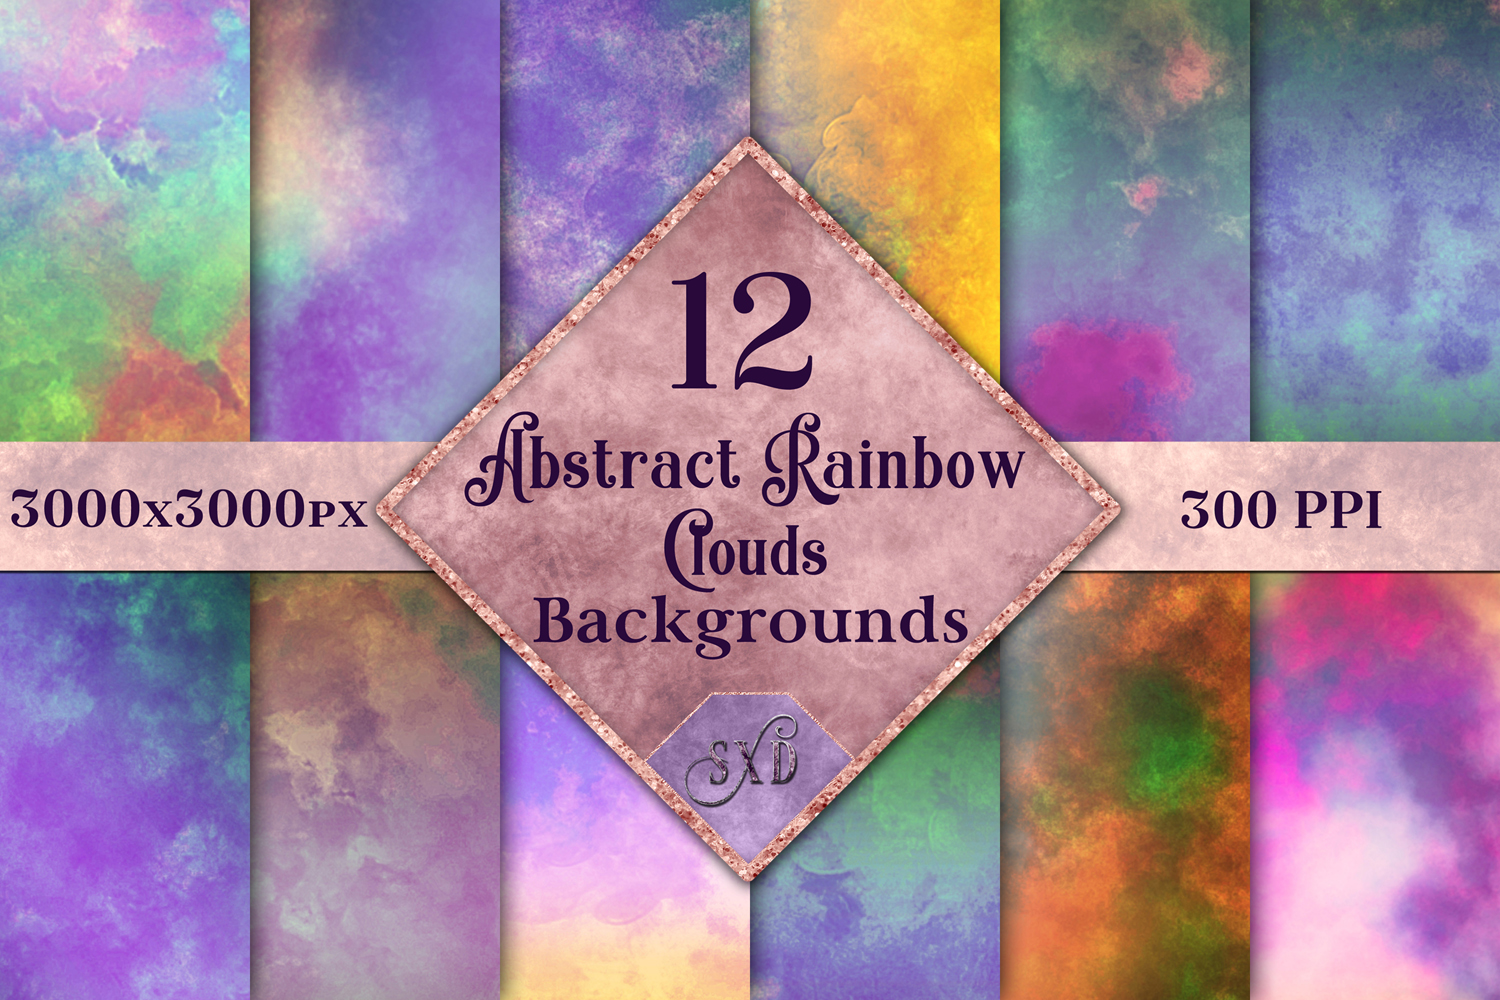 Abstract Rainbow Clouds Backgrounds - 12 Image Set example image 1